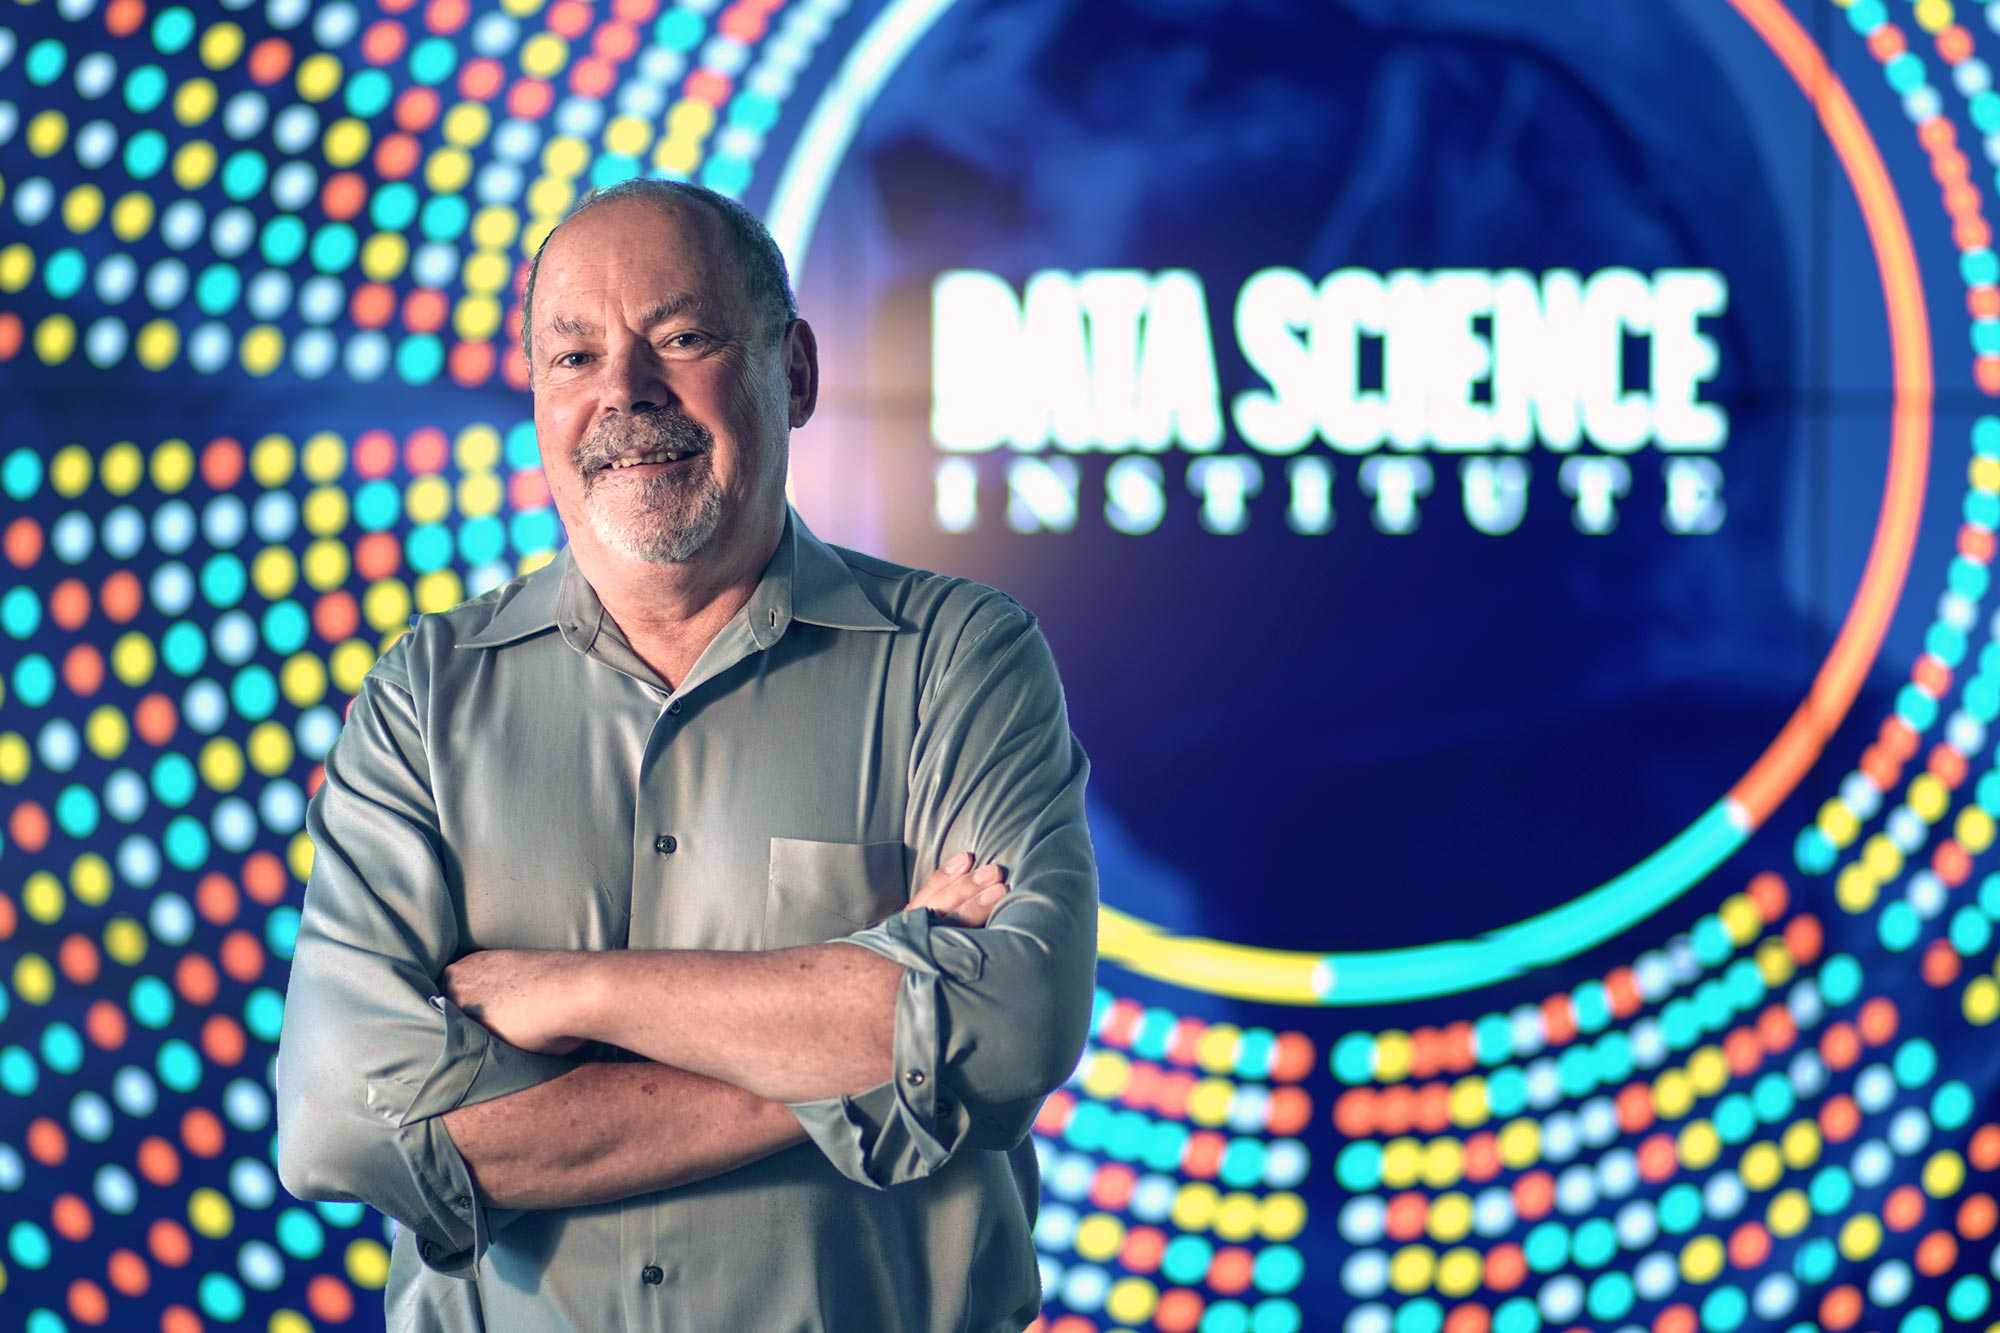 Philip Bourne, who previously led a major program at the National Institutes of Health, in May became the second director of UVA's Data Science Institute. (Photo by Tom Cogill)